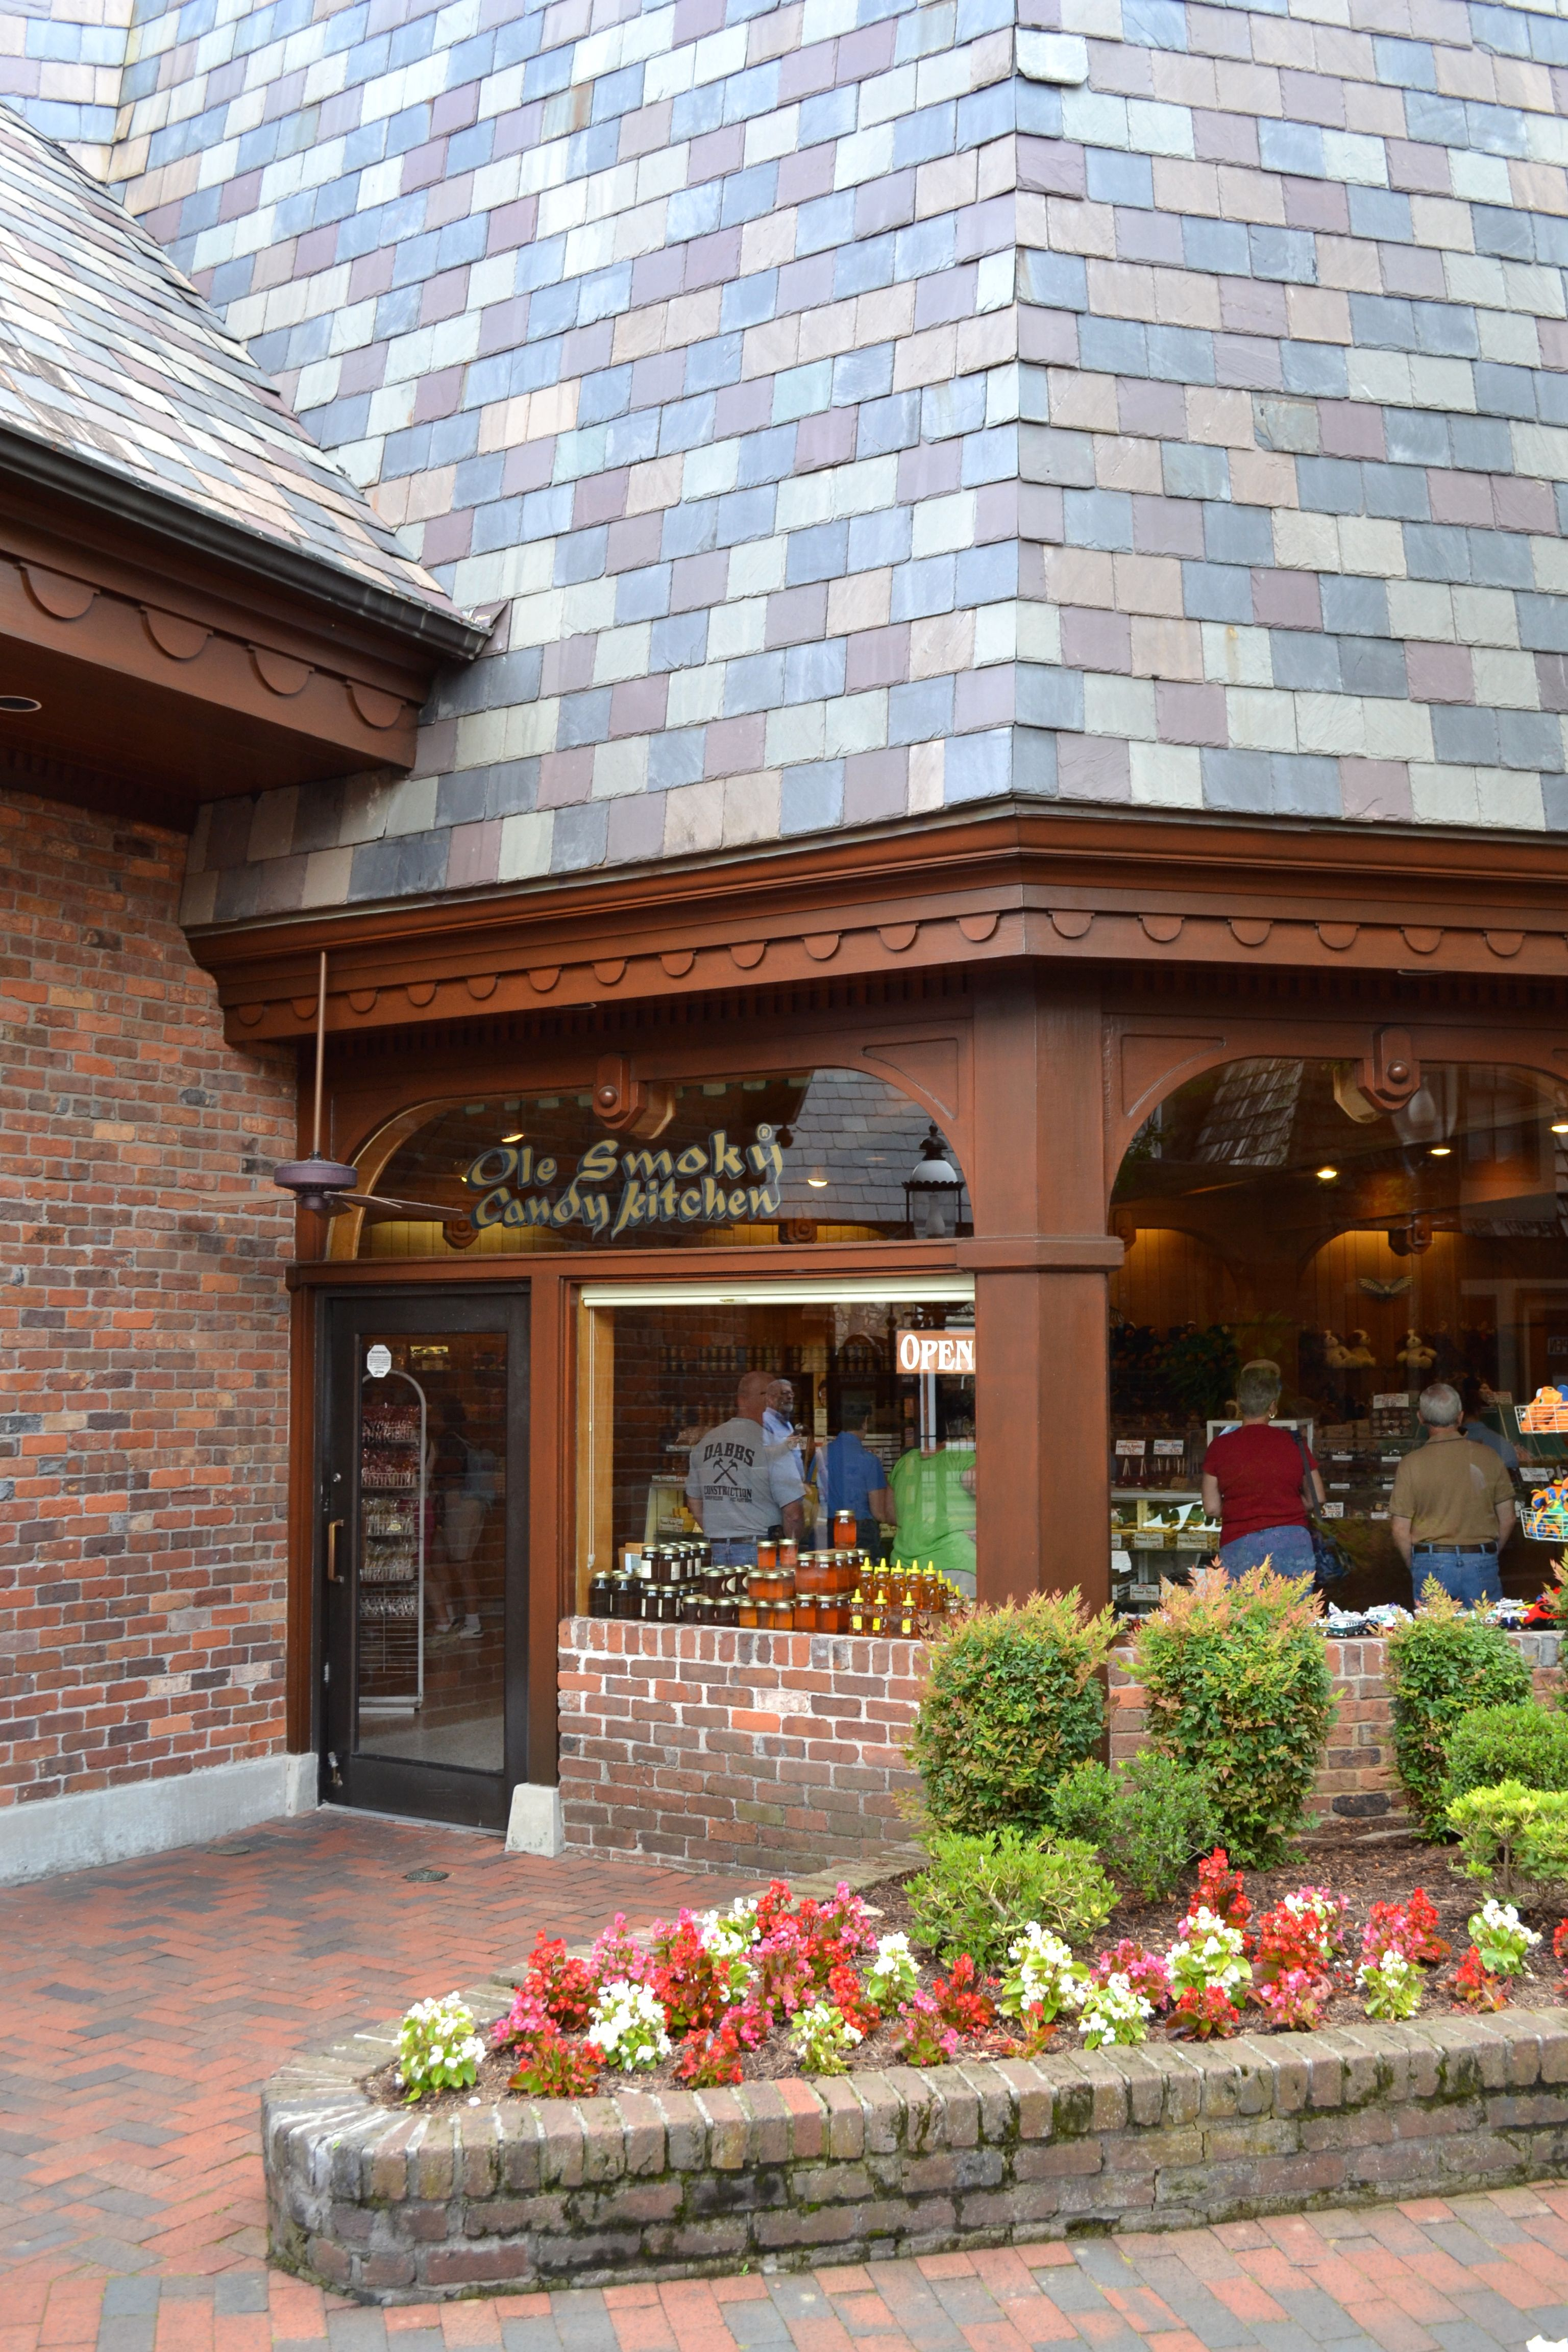 Ole Smoky Candy Kitchen In Gatlinburg Tennessee Right